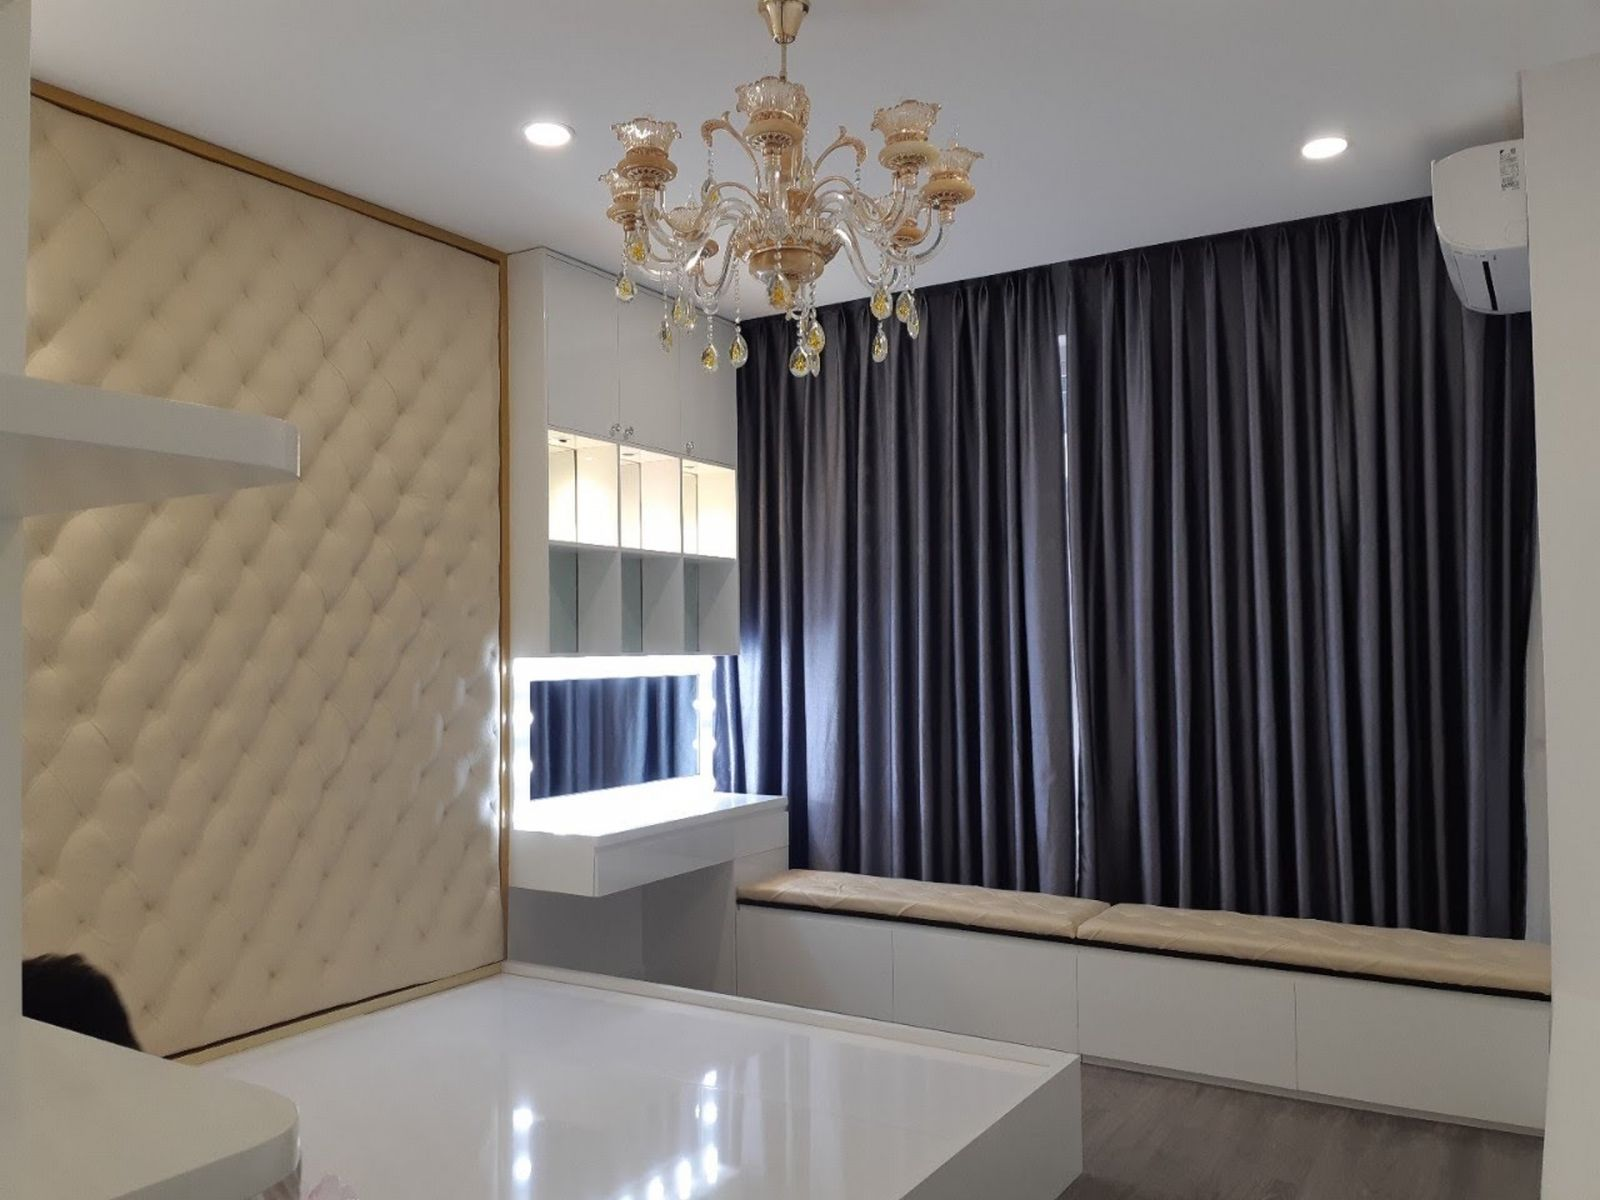 Hung Loc Phat Apartment project in Nha Be